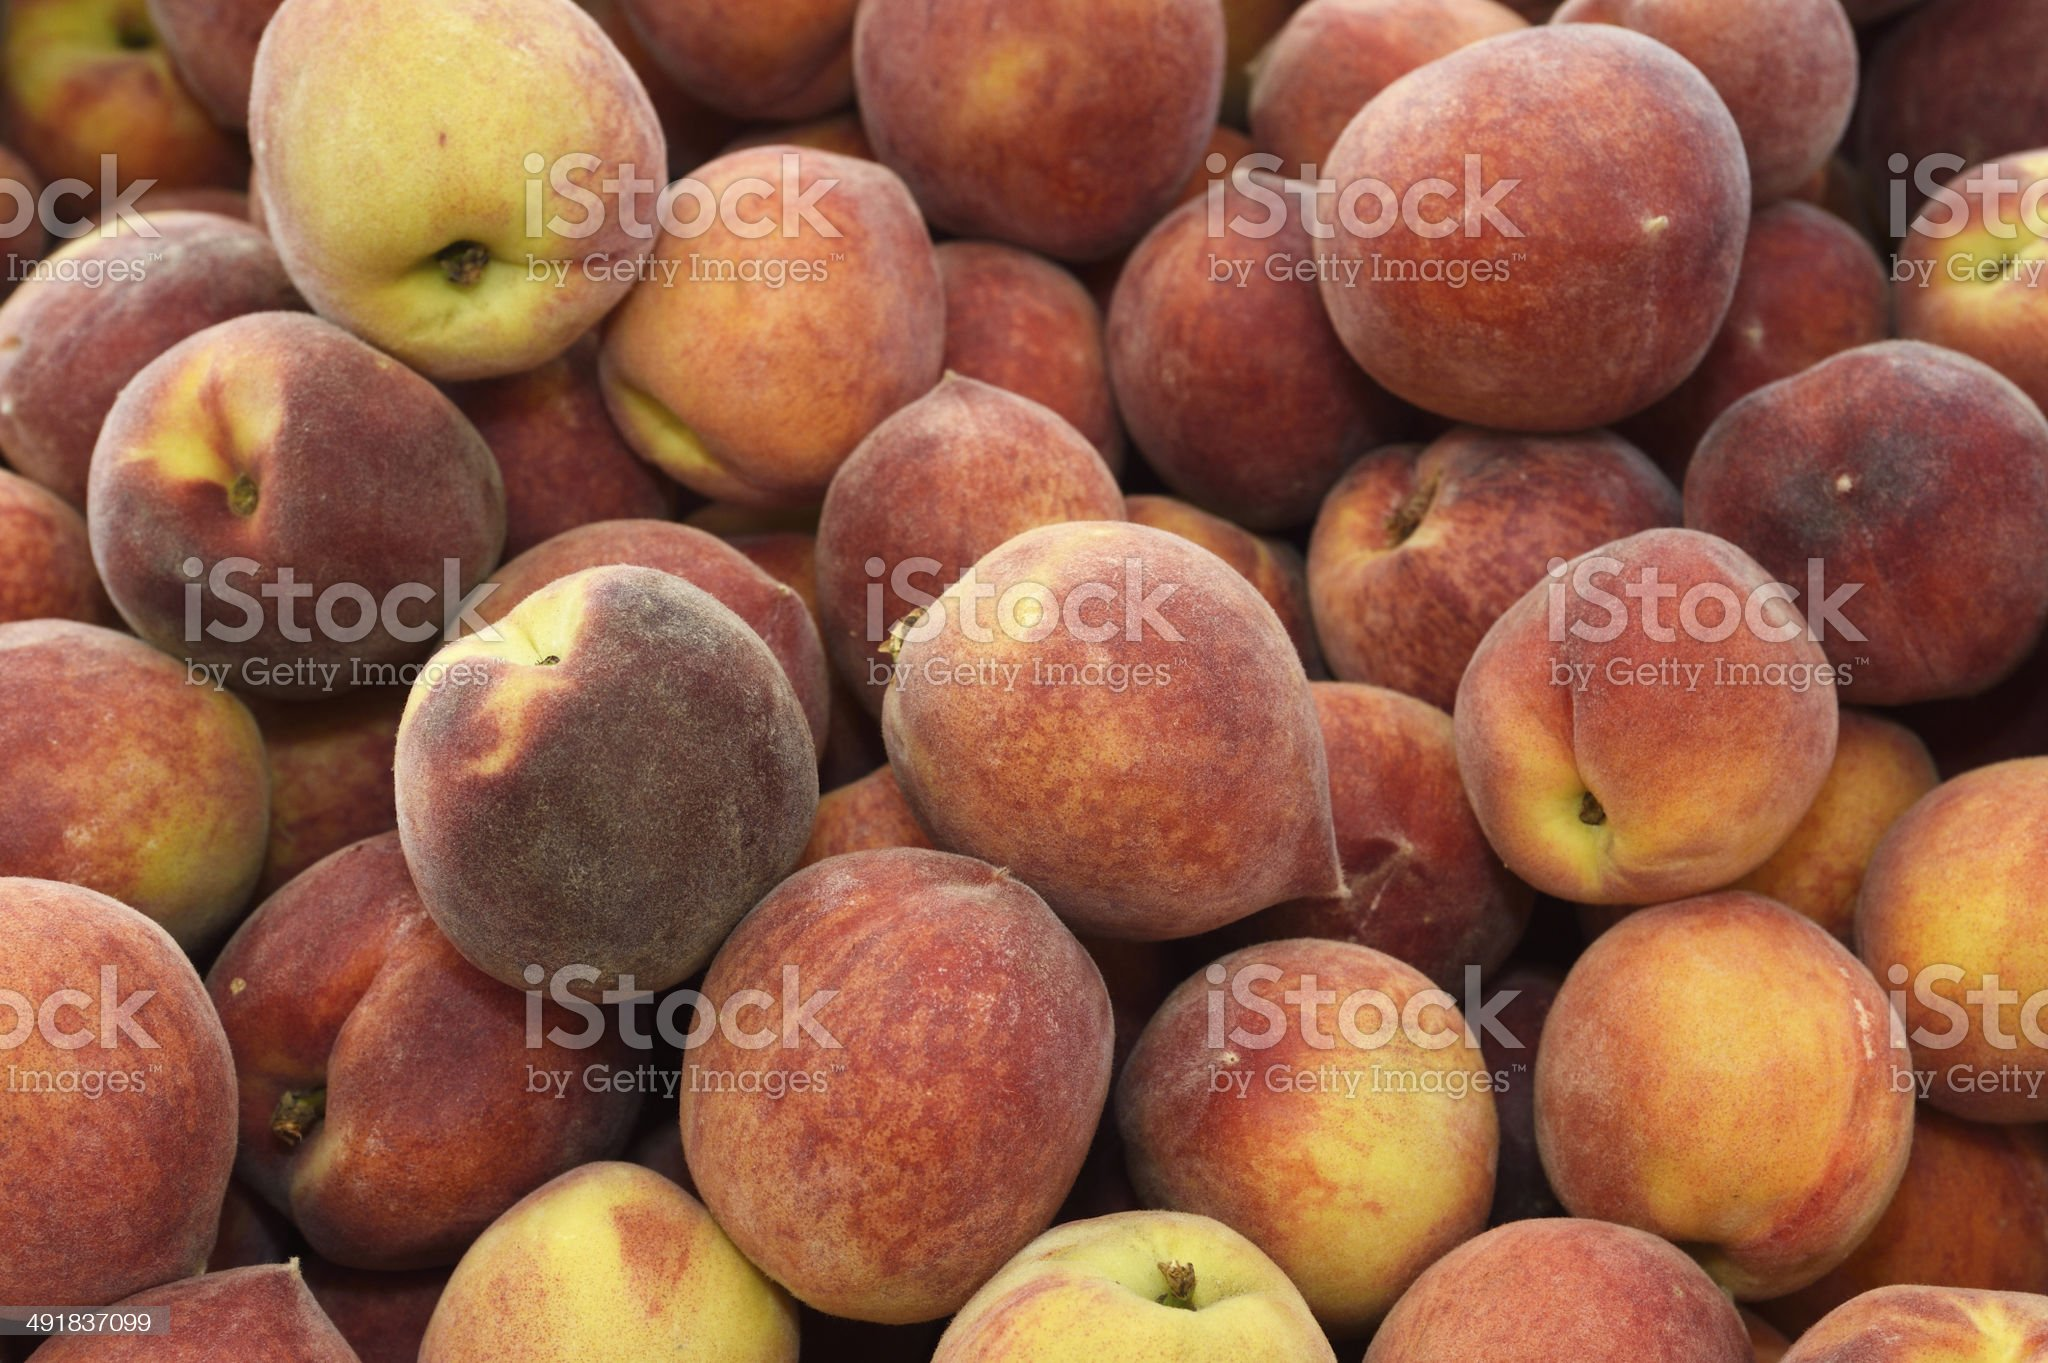 Close-up of Organic Peaches at Farmer's Market royalty-free stock photo